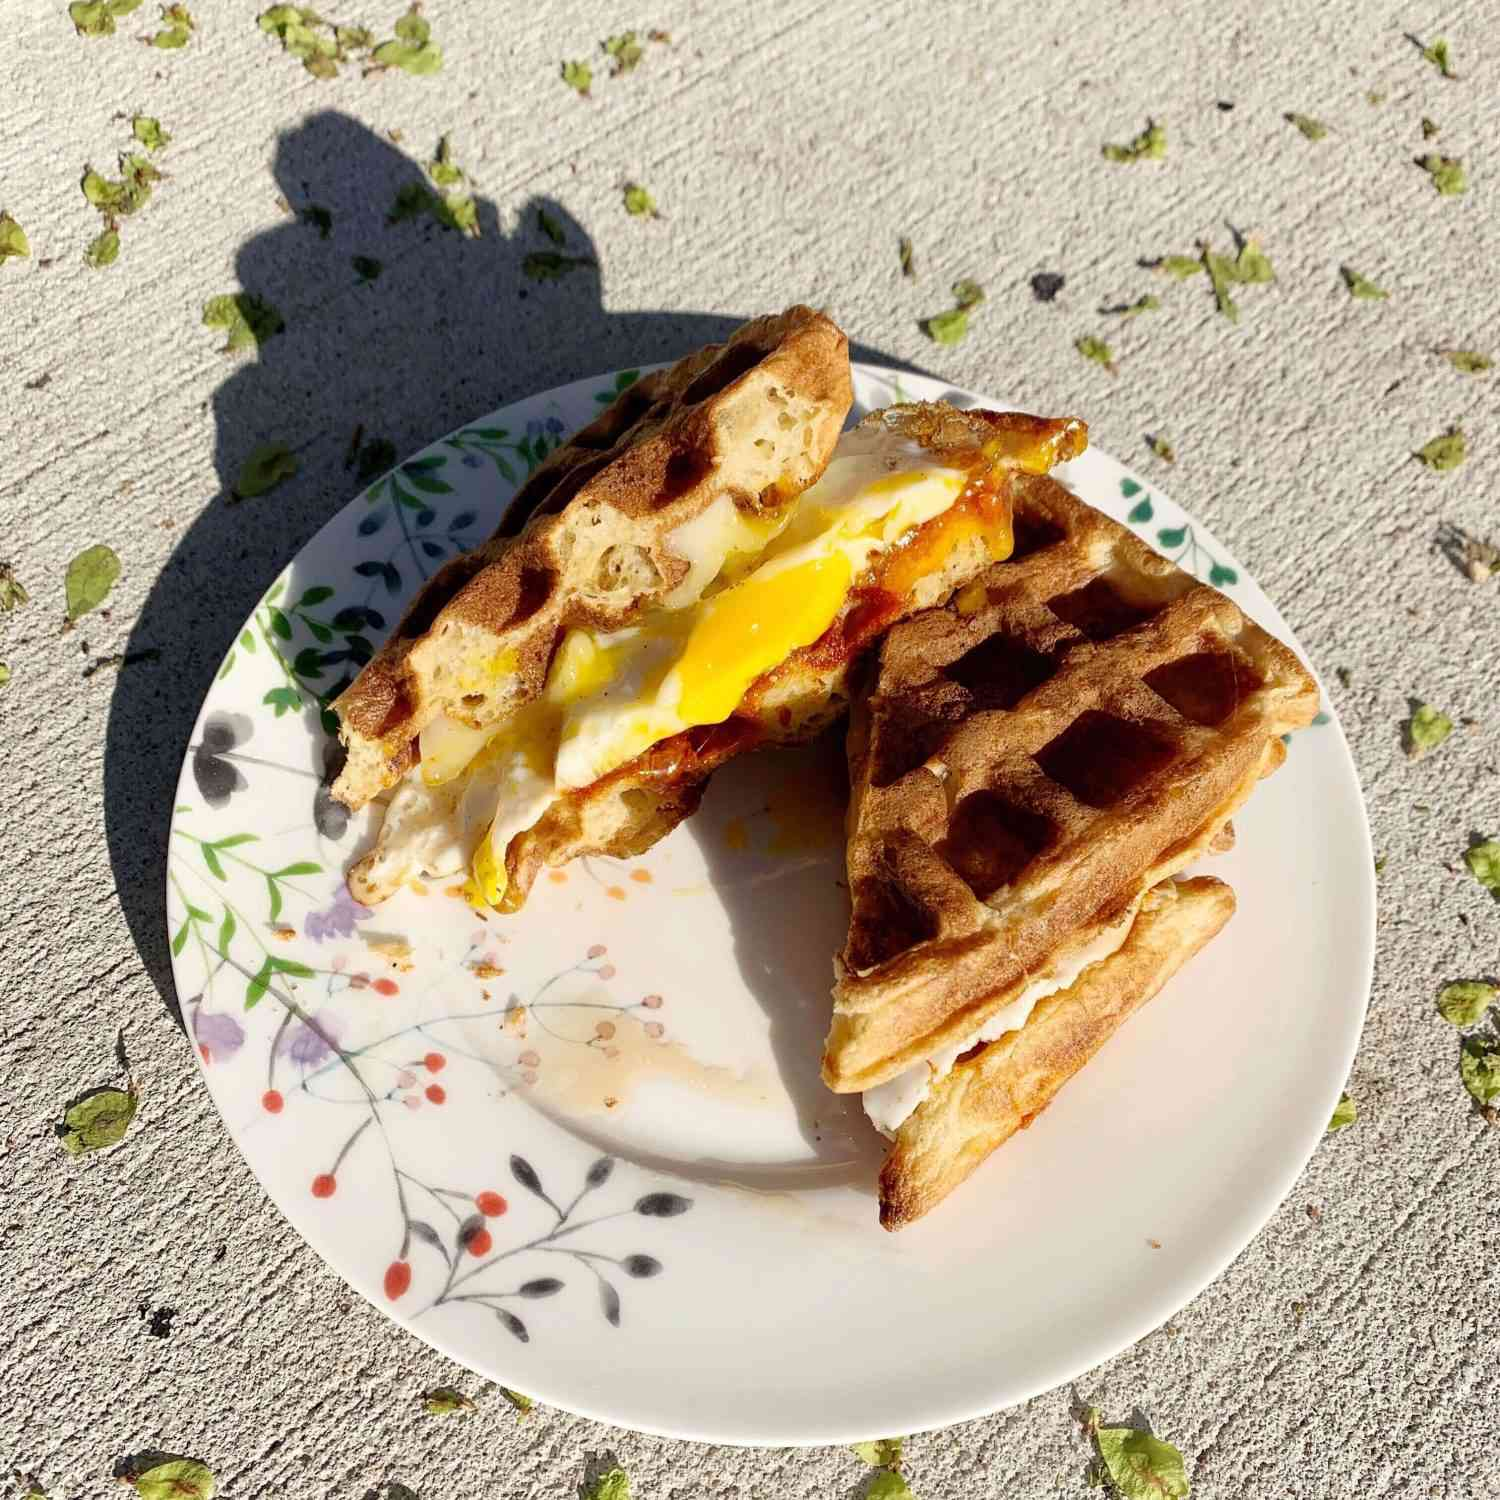 Waffle breakfast sandwich with egg and cheese